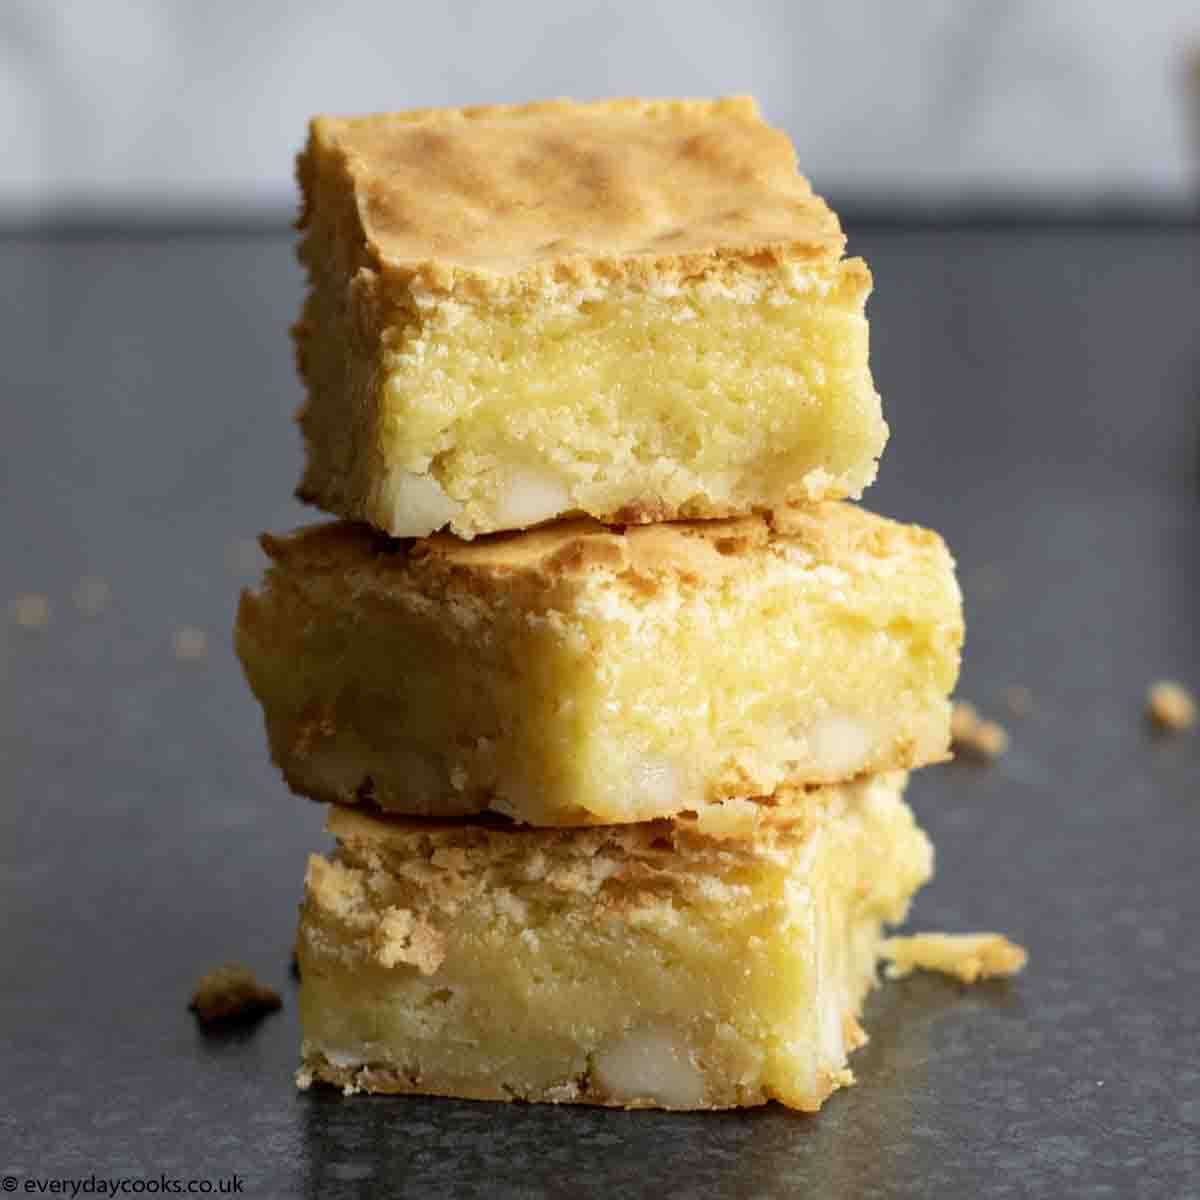 Stack of 3 White Chocolate Brownies on a dark worktop